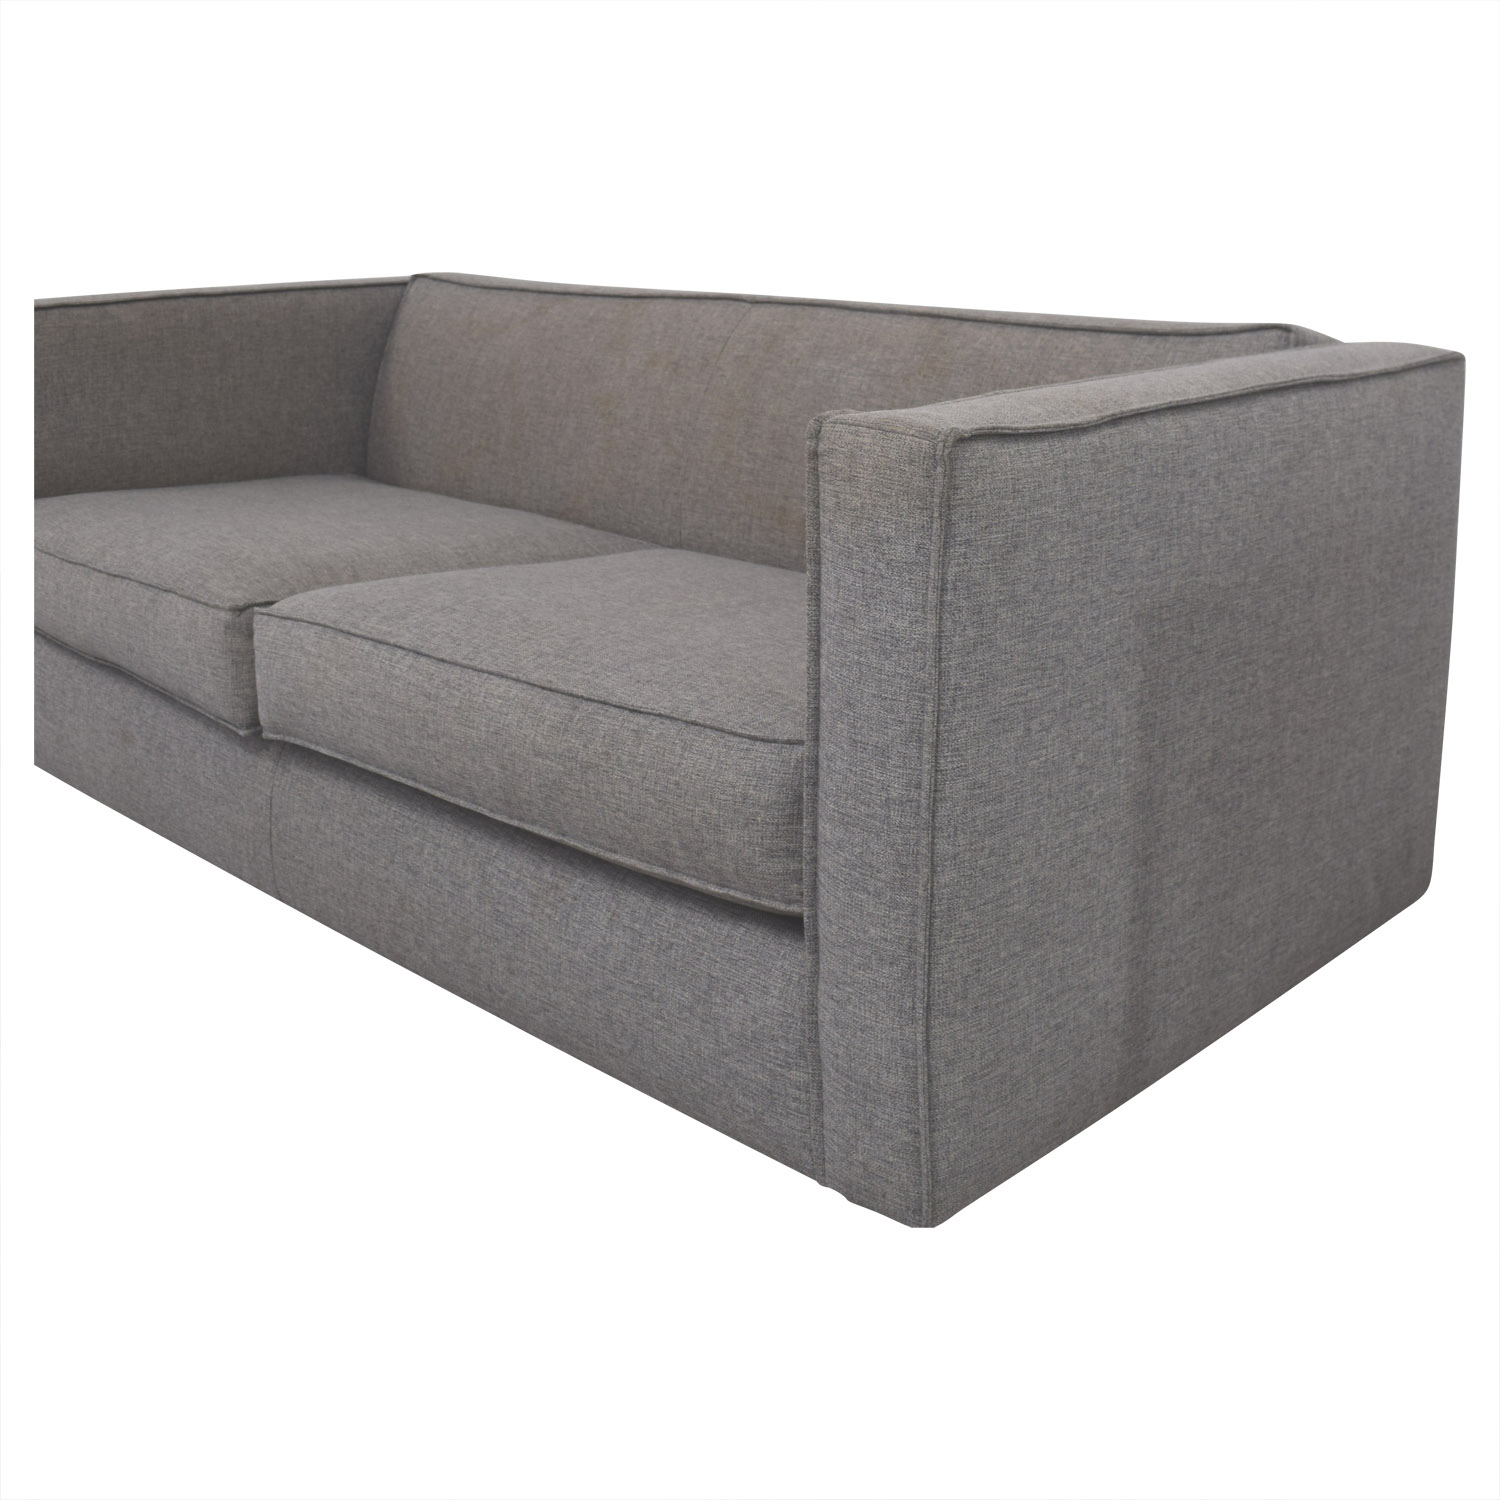 CB2 CB2 Club Grey Two-Cushion Sofa second hand